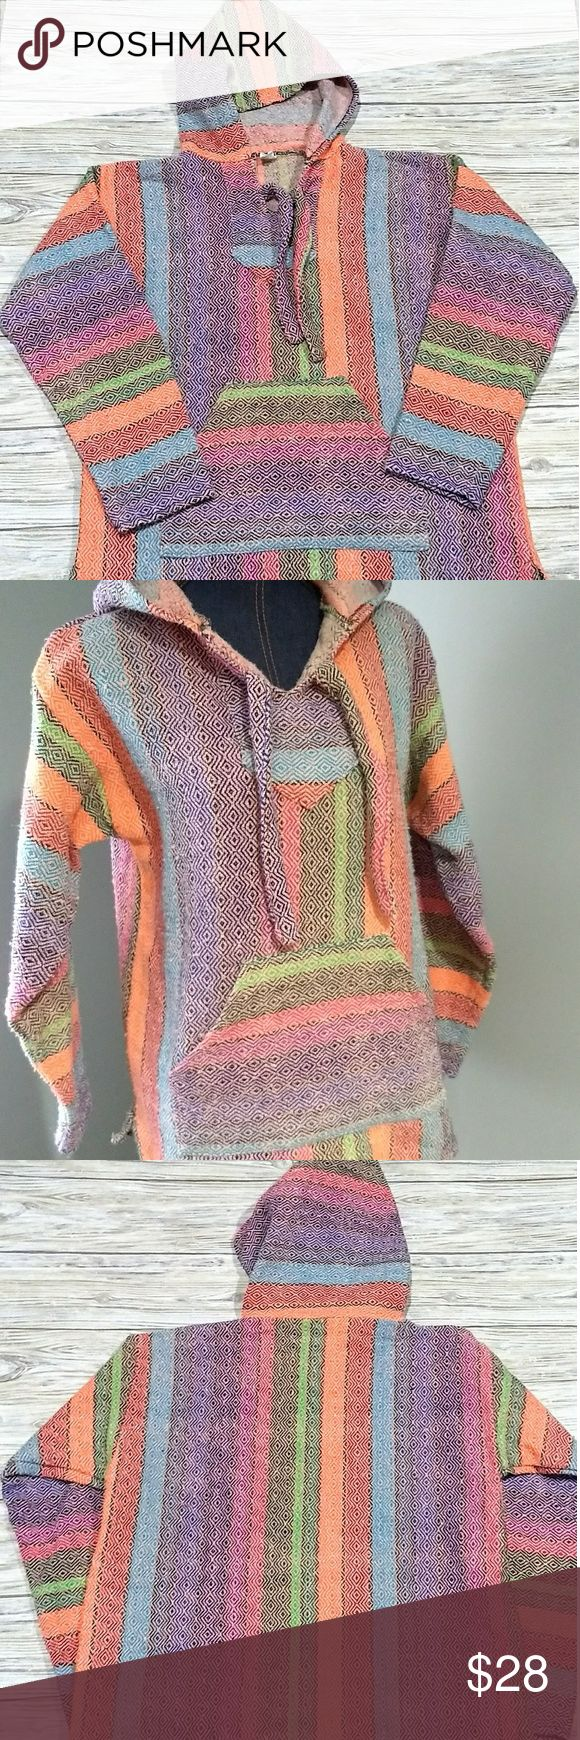 Baja Jacket/Drug Rug/ Mexican Thread Molina Mexican Baja Jacket/Drug Rug/Thread Jacket/Hoodie  Awesome colors!! Shades of Red, blue, green,purple, pink, orange and black  Pease note measurements  Underarm to Underarm: 22 inches Length: 26 inches  Used, pilling and normal wear Molina Tops Sweatshirts & Hoodies